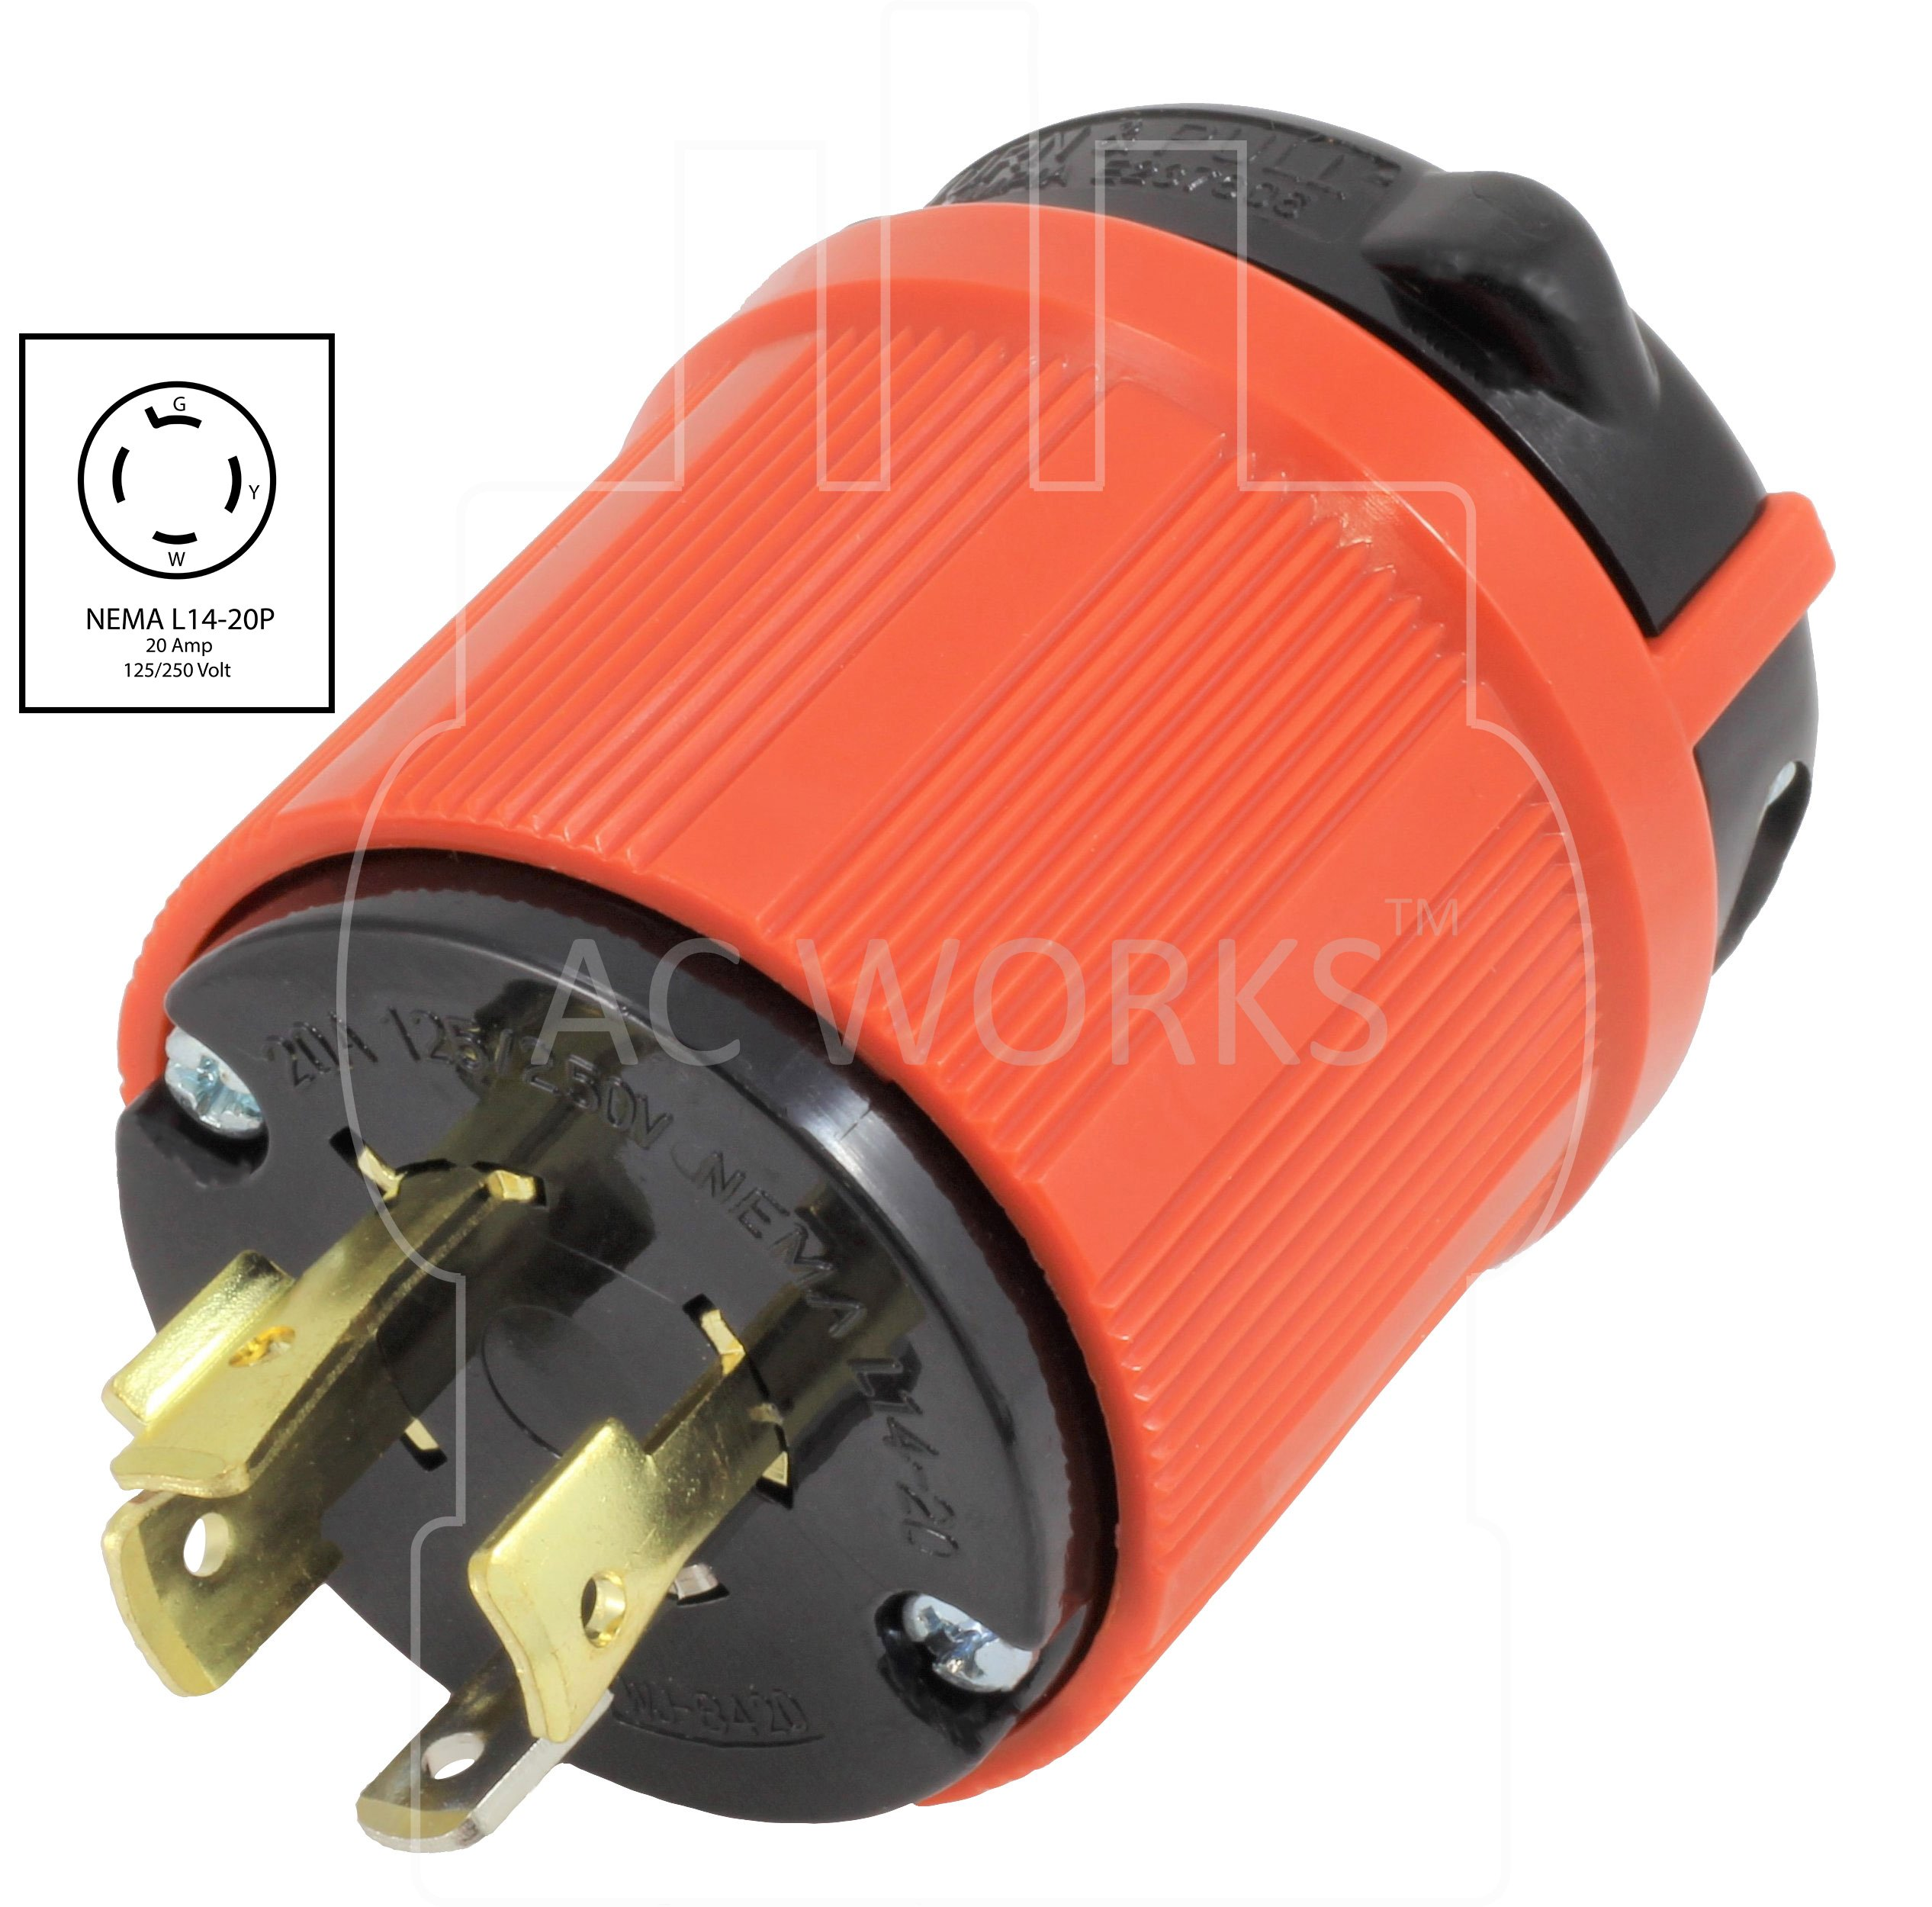 AC WORKS [ASL1420P] NEMA L14-20P 20Amp 125/250Volt 4Prong Locking Male Plug With UL, C-UL Approval by AC WORKS (Image #2)